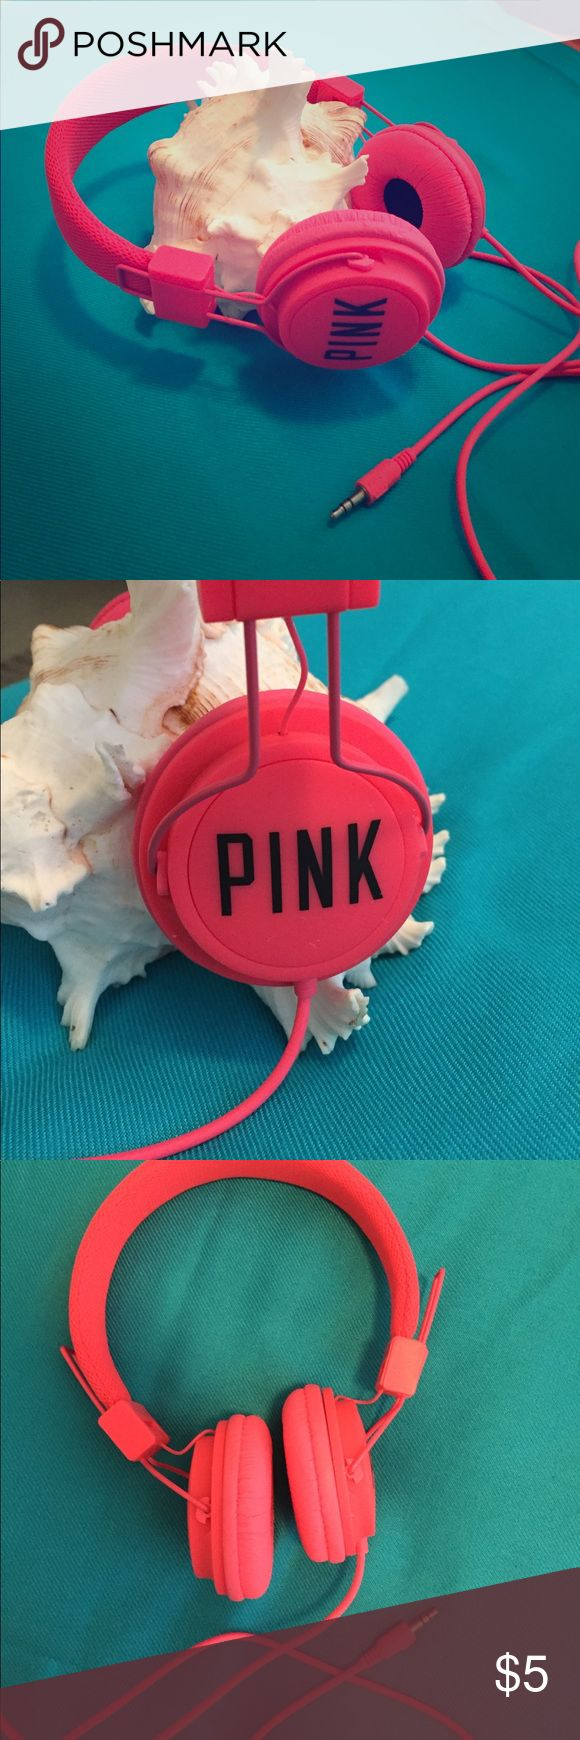 Headphones Victoria secret PINK headphones.  Never used.  Adjustable ears.  Standard plugin. PINK Victoria's Secret Other